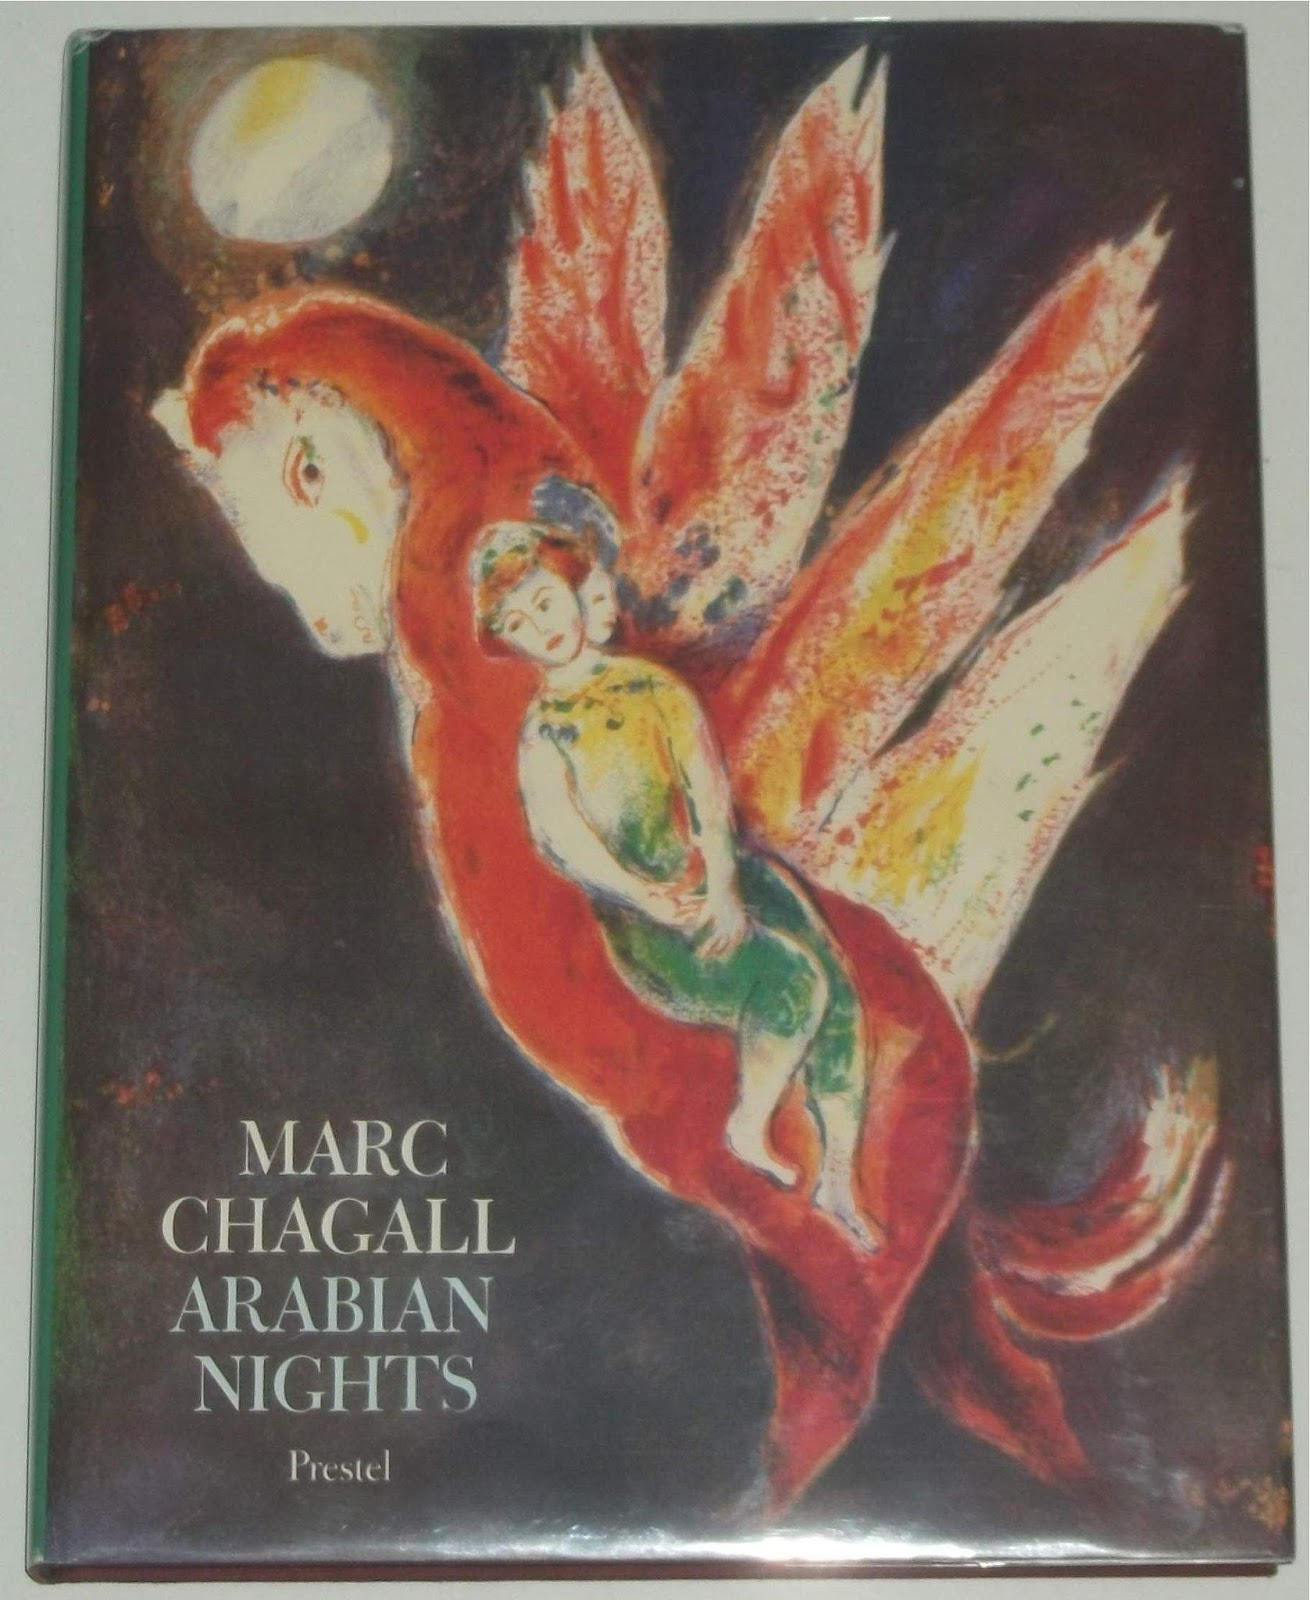 essay on thousand and one nights One thousand and one nights is an arab book of stories that contains legends, stories, anecdotes and others there are many stories written in verse.